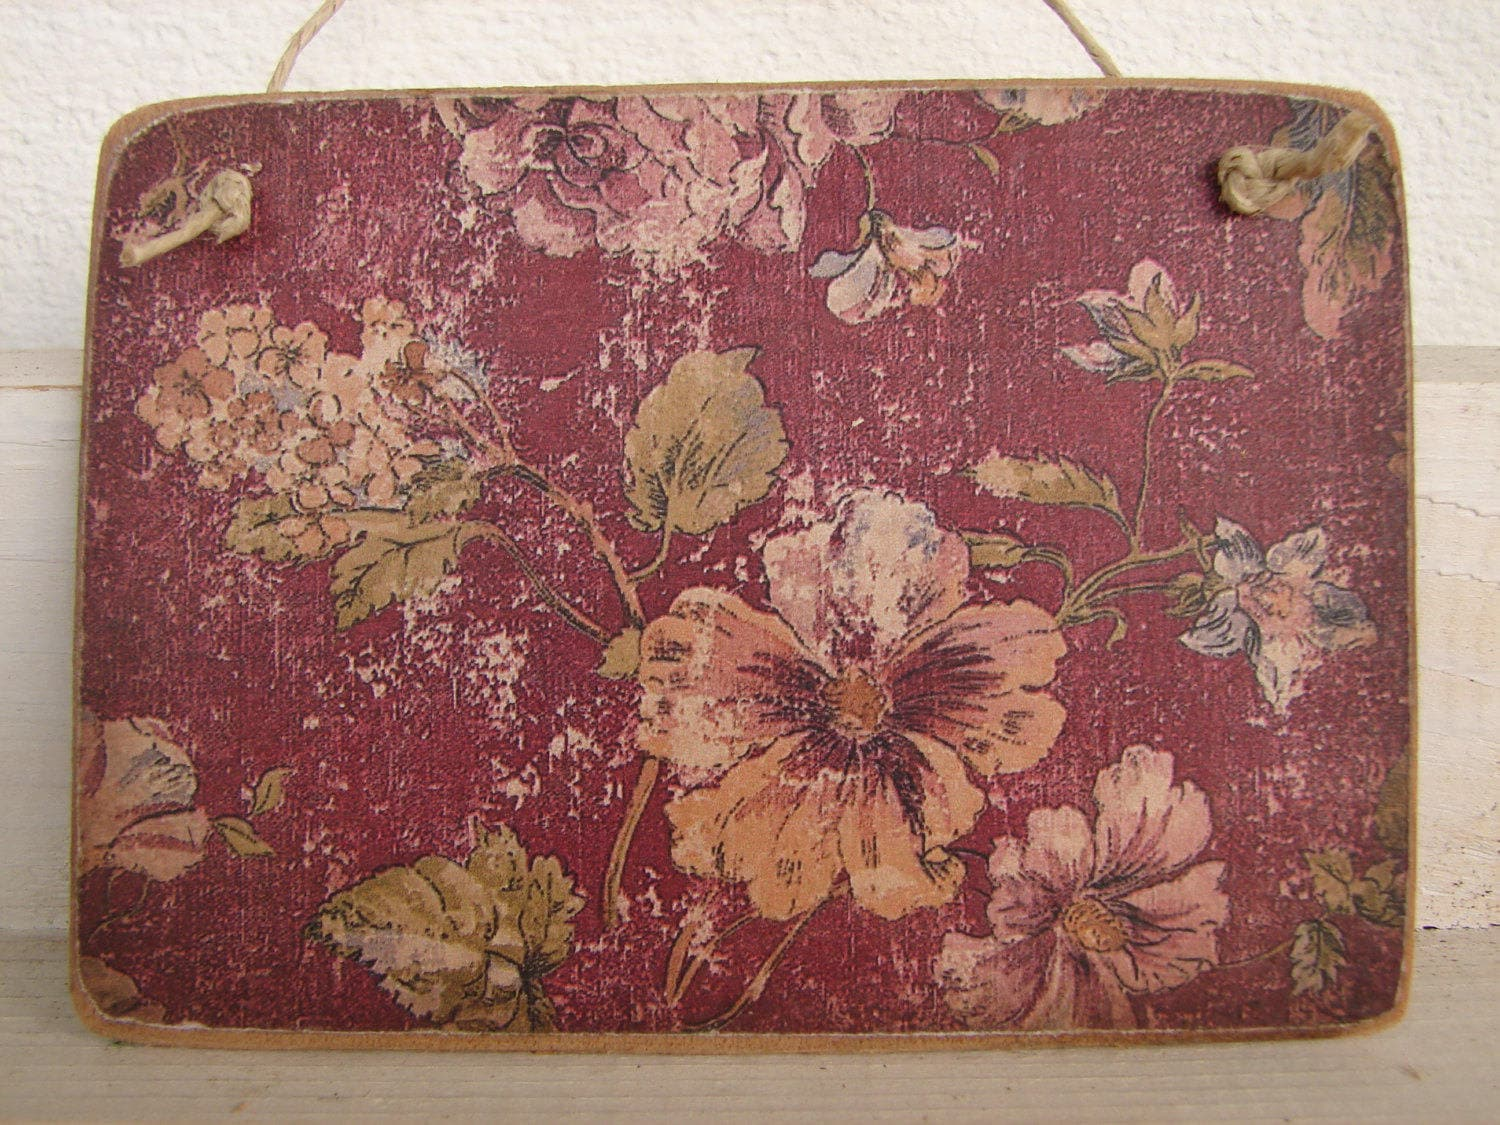 Victorian Style Grungy Floral Wallpaper Image On Wooden Tag Etsy